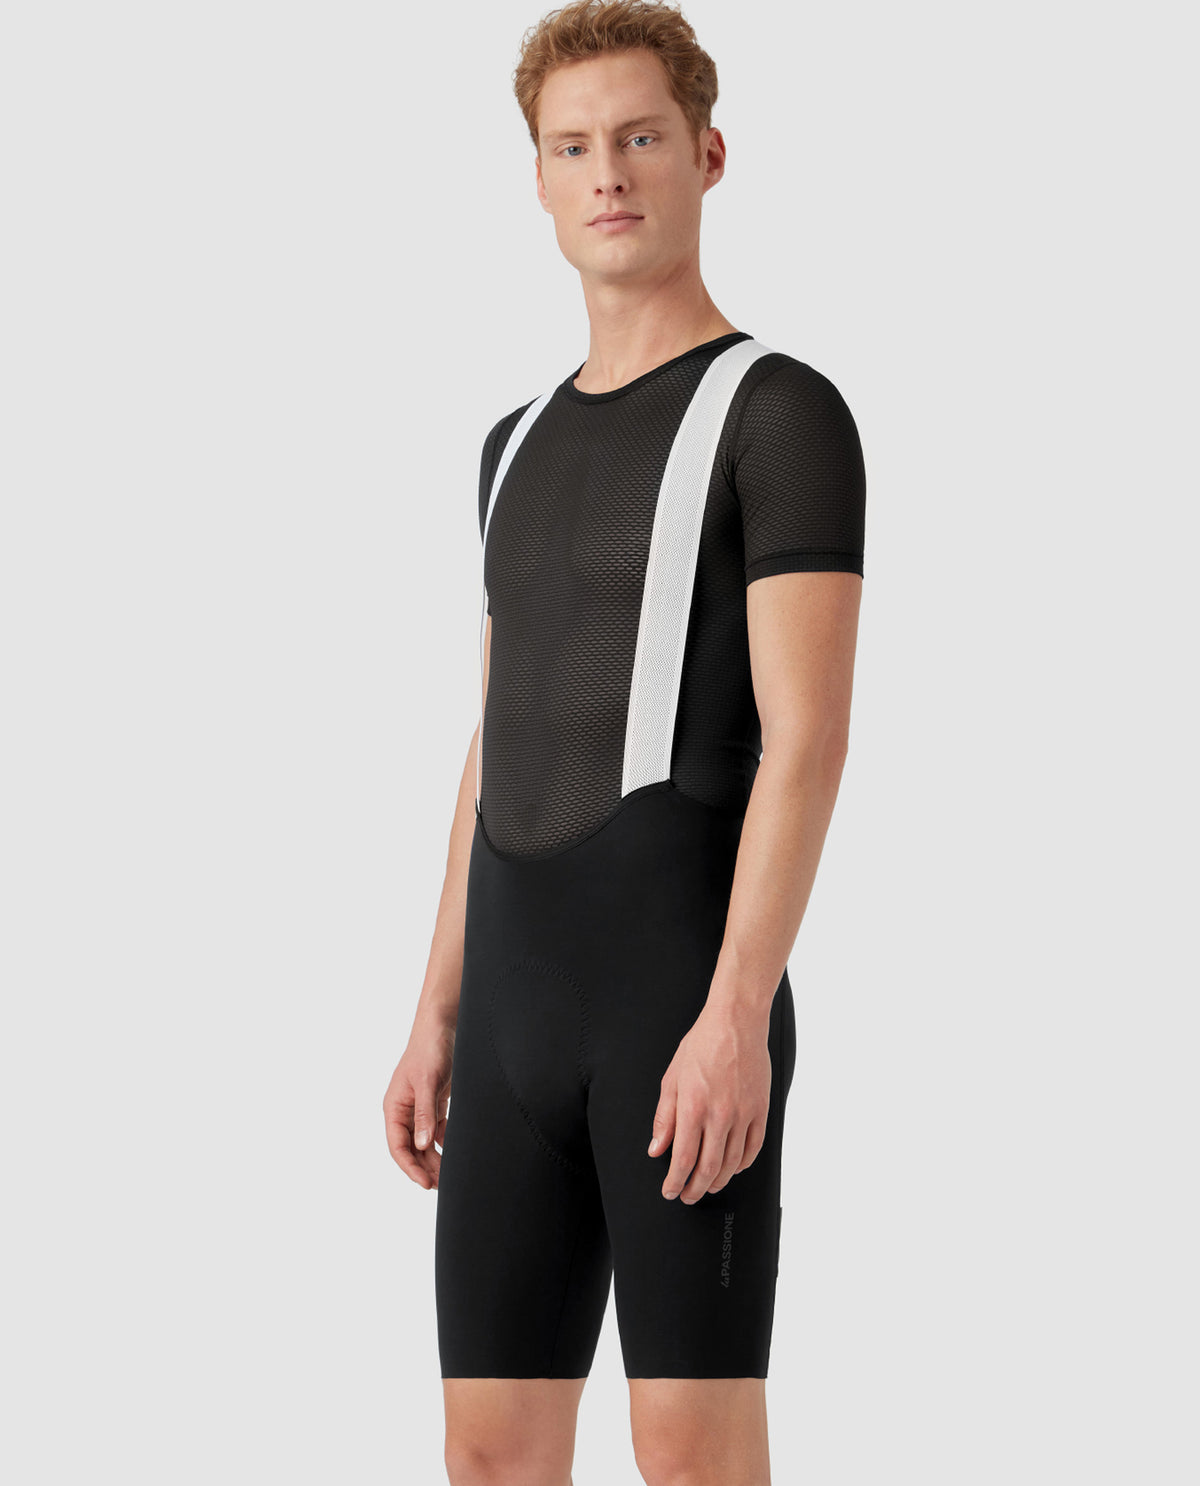 Minimal Bib Shorts Black